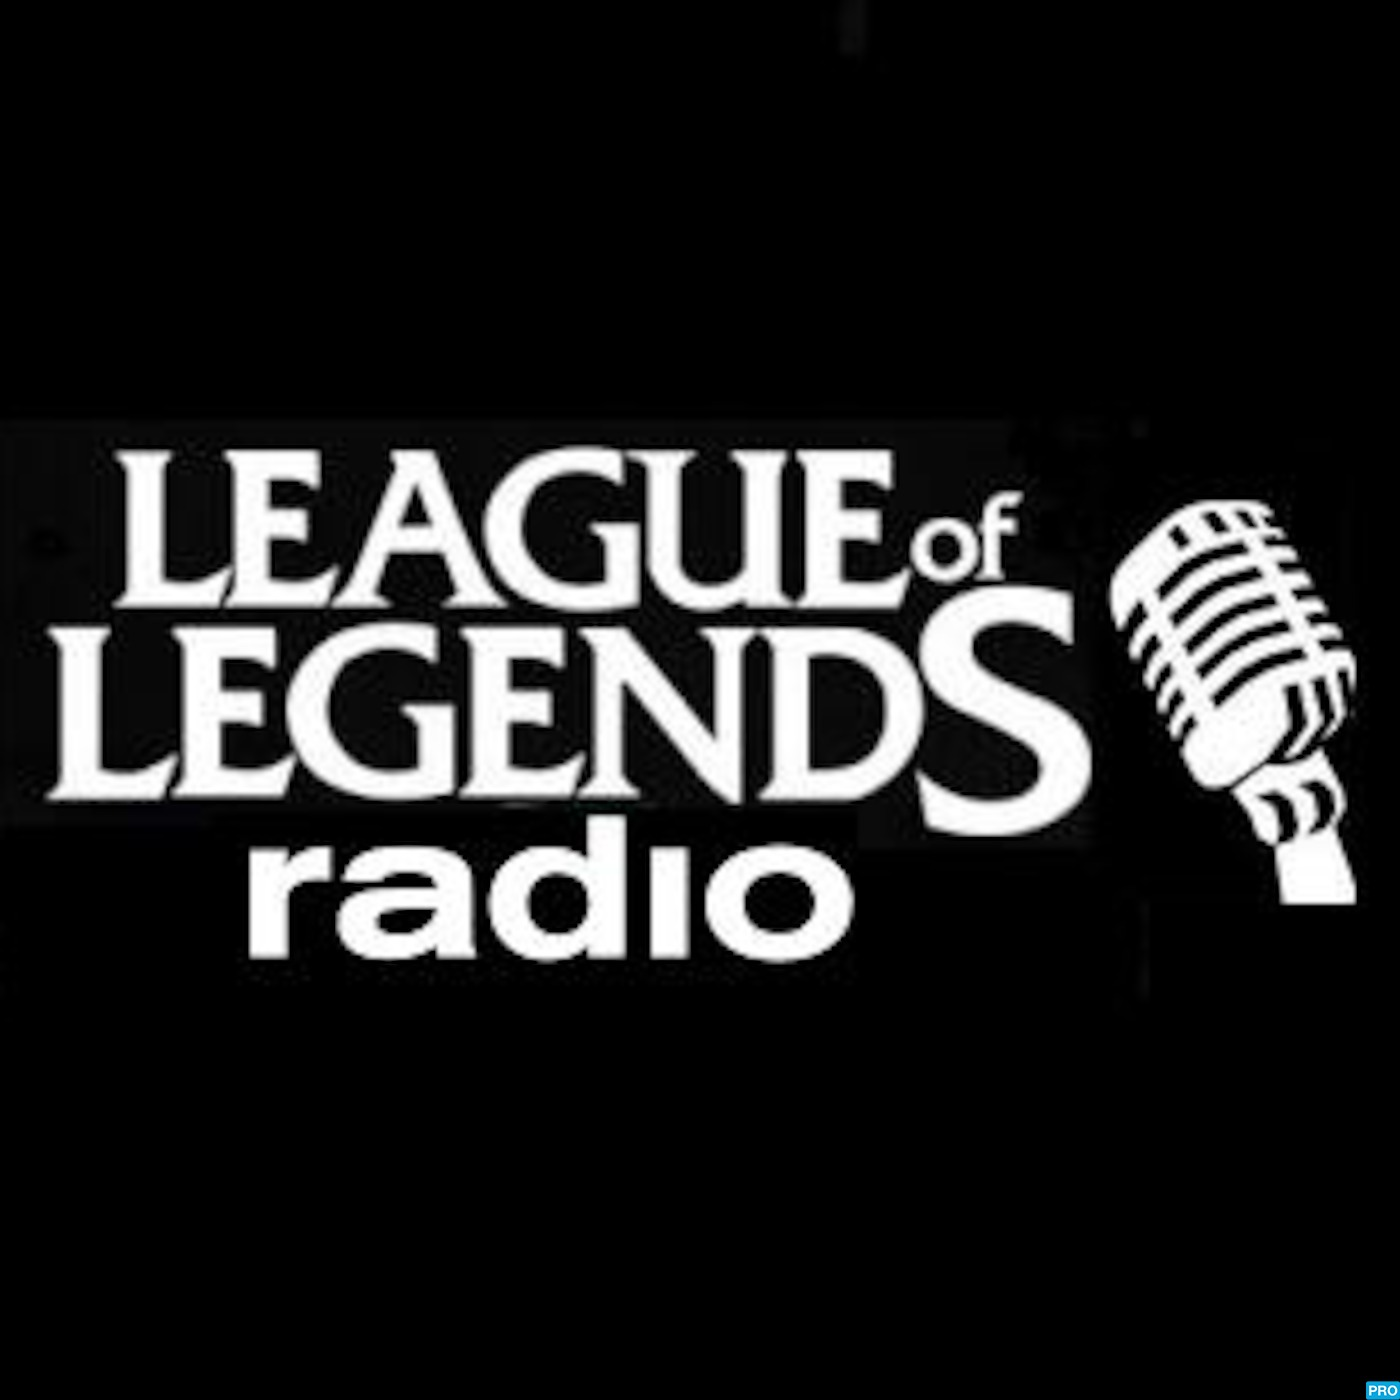 League of Legends Radio